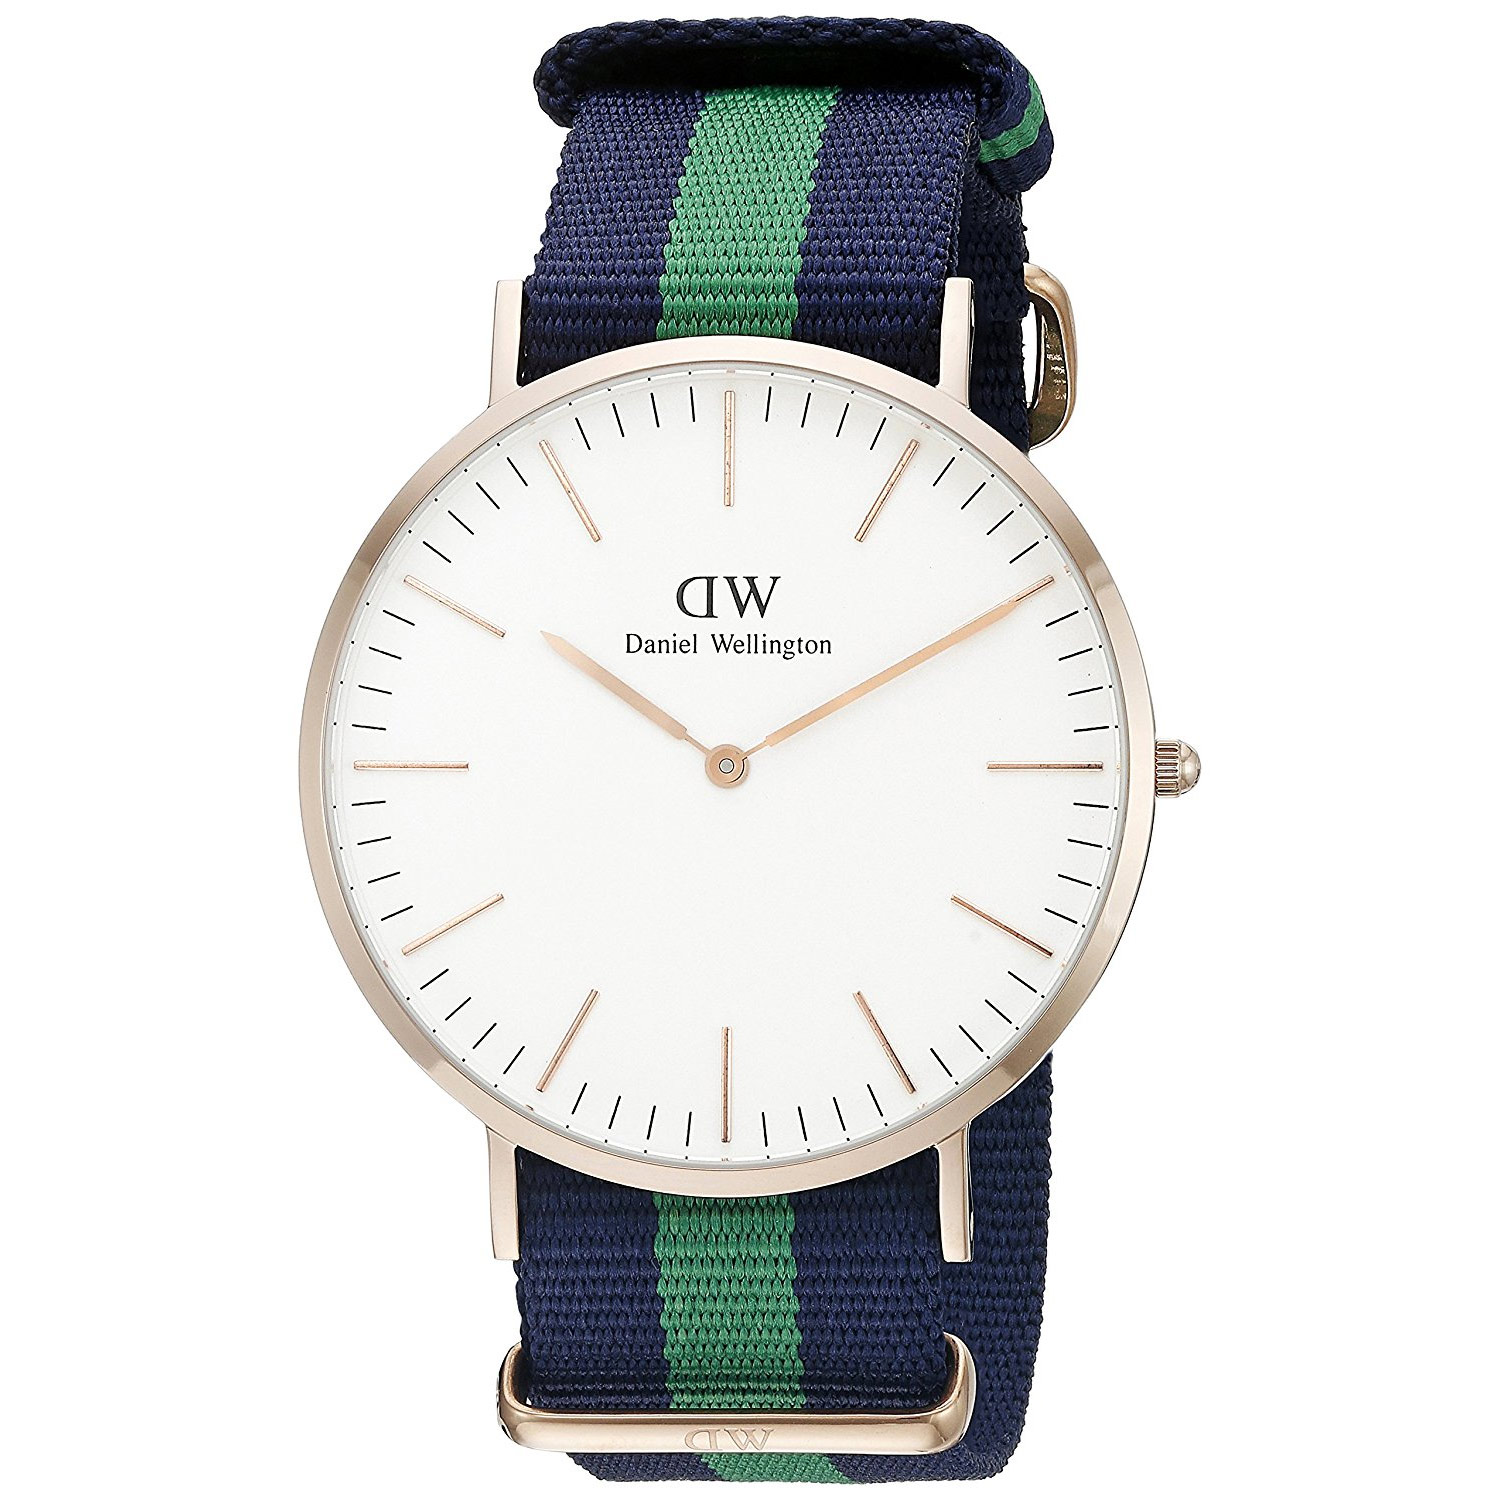 daniel wellington warwick dw00100005 uhr in ros gold mit natoarmband herrenuhren. Black Bedroom Furniture Sets. Home Design Ideas